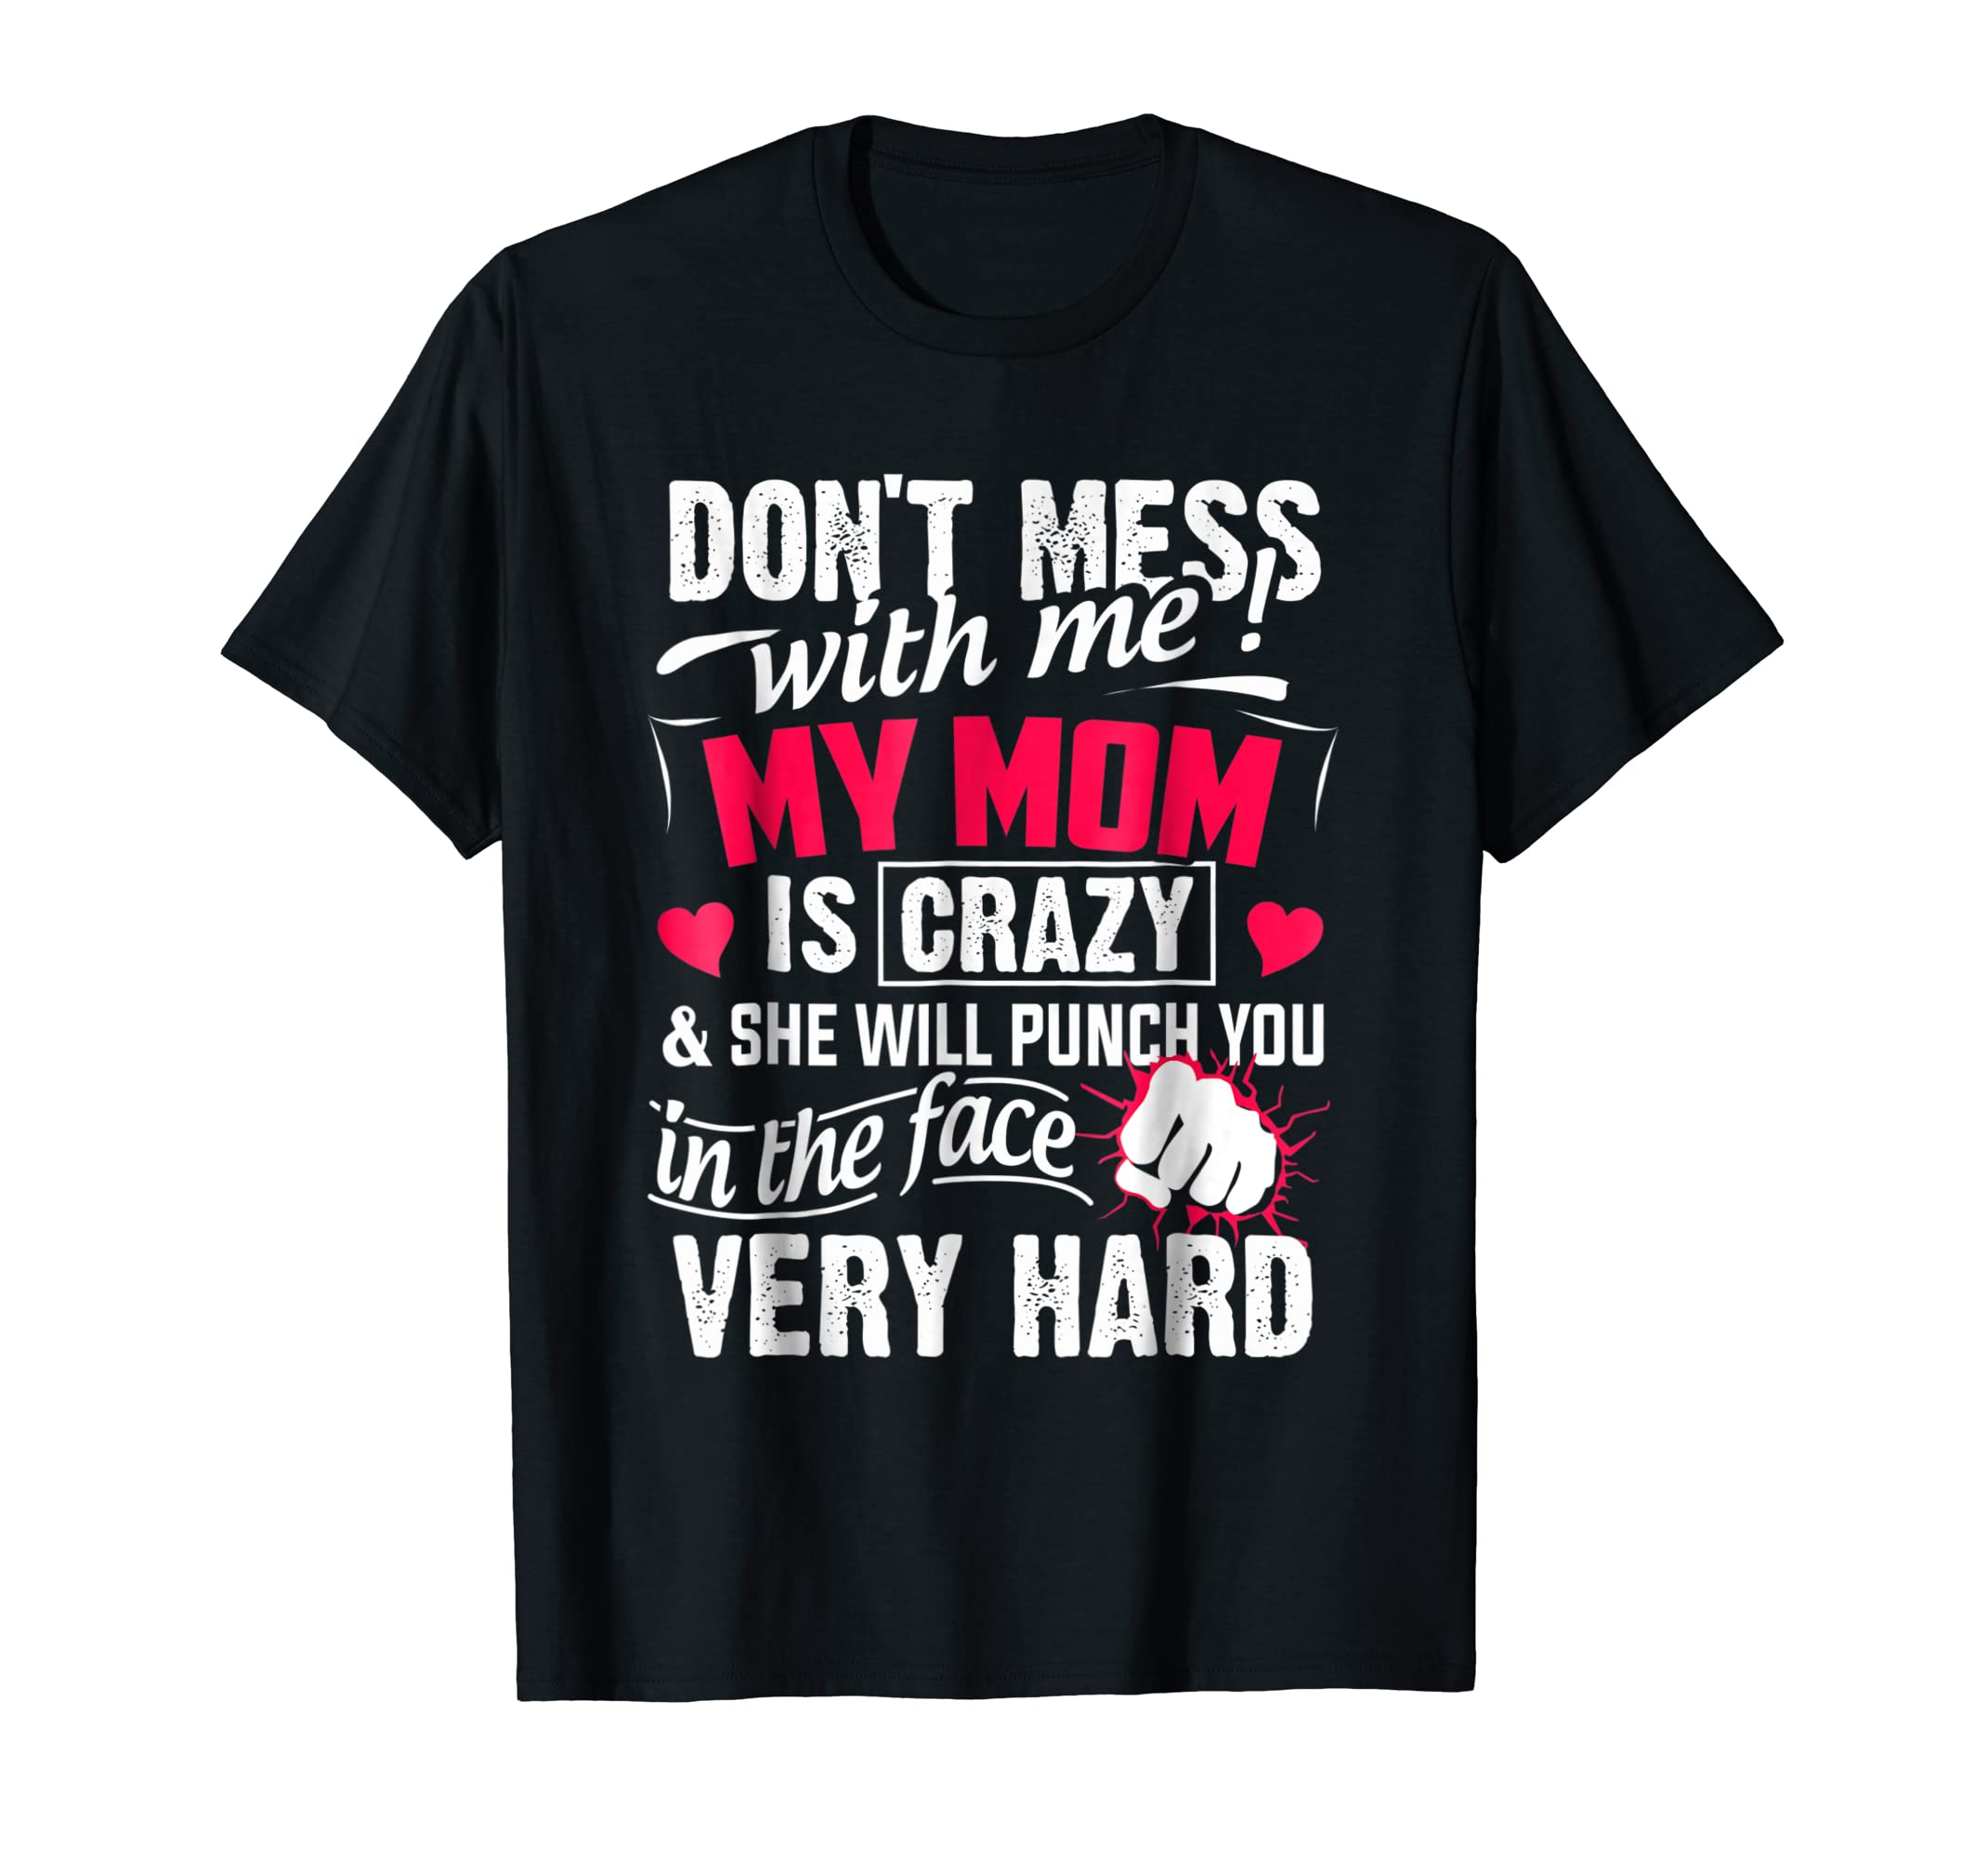 b755f0c4 Amazon.com: Don't Mess With Me My Mom Is Crazy T-shirt, Father's Day:  Clothing